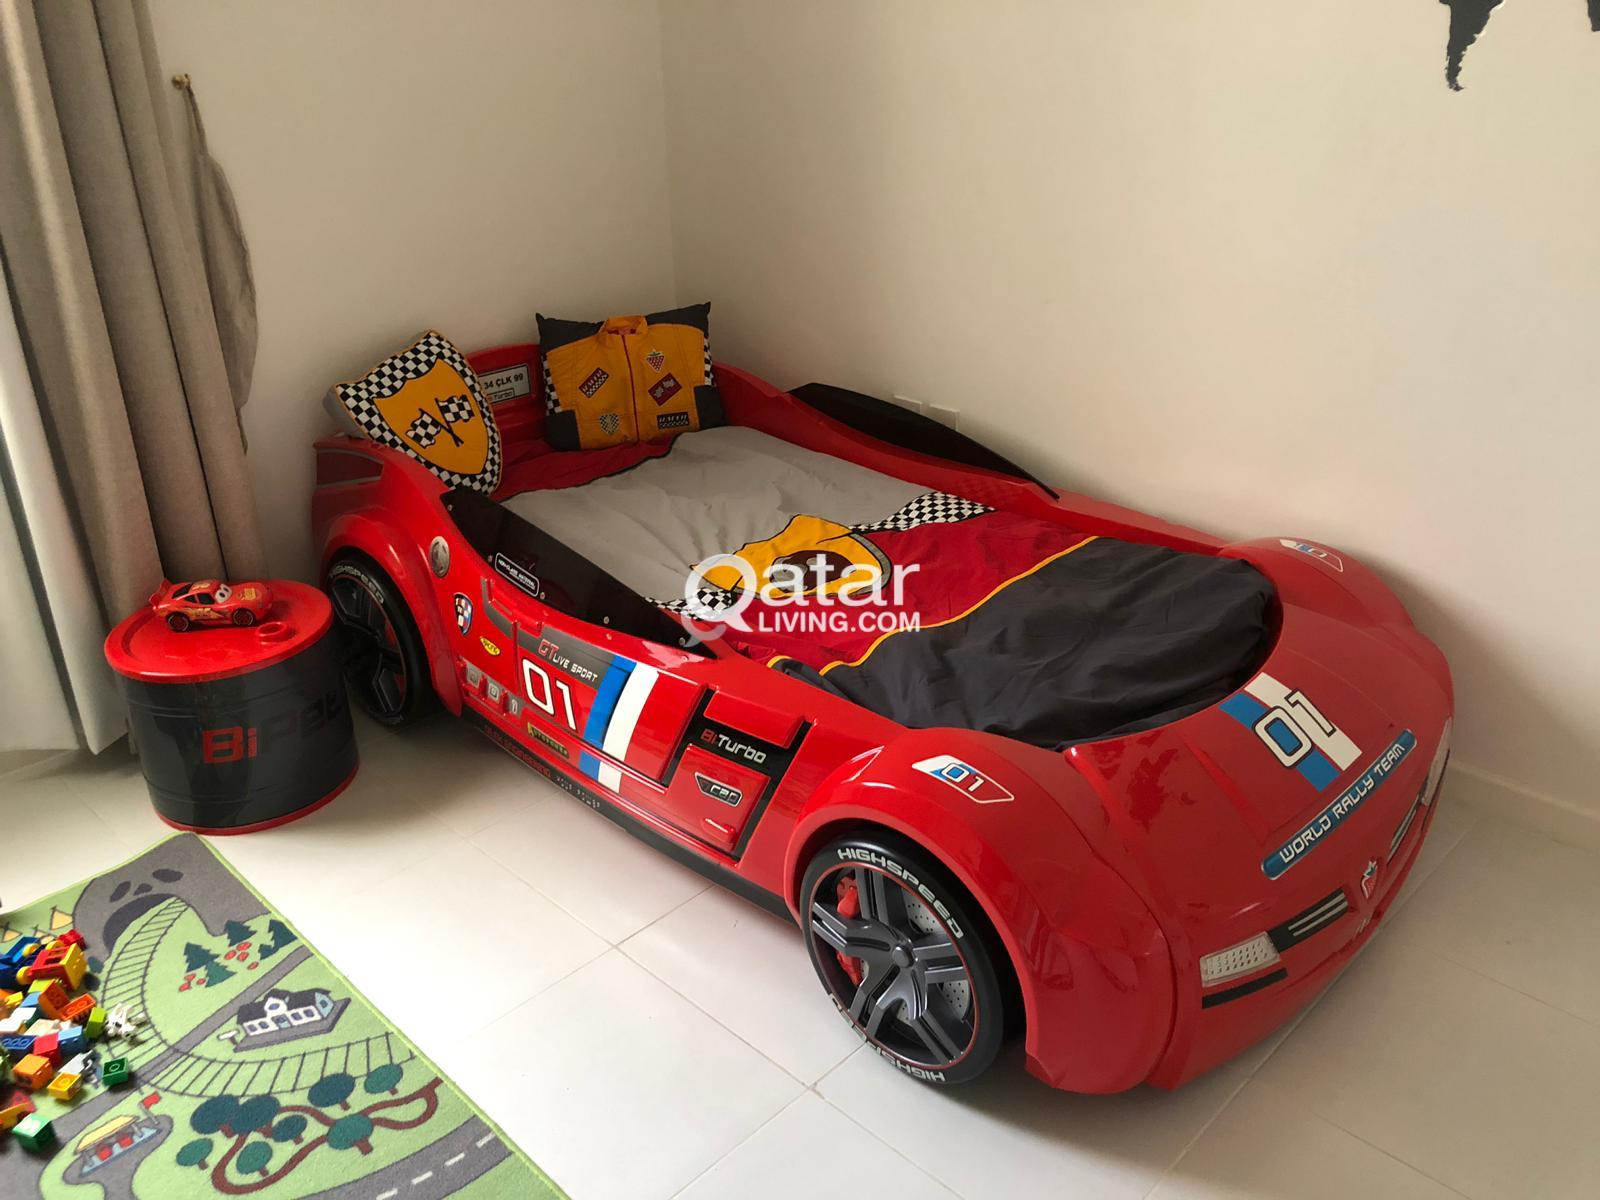 Large Kids Cilek Gts Car Bed And Nightstand Toy Box Qatar Living